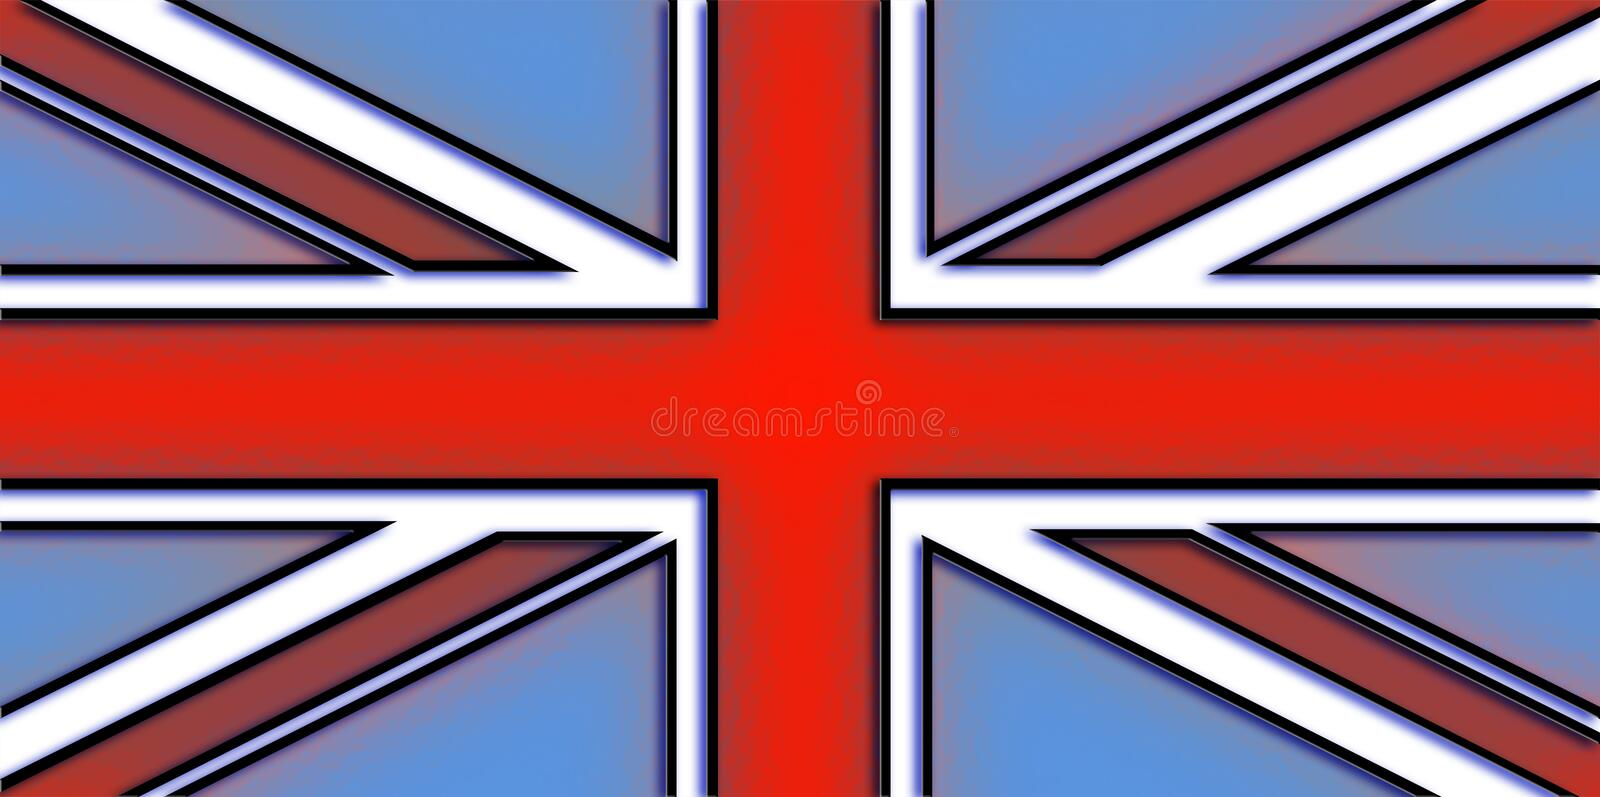 De Vlag van Union Jack vector illustratie